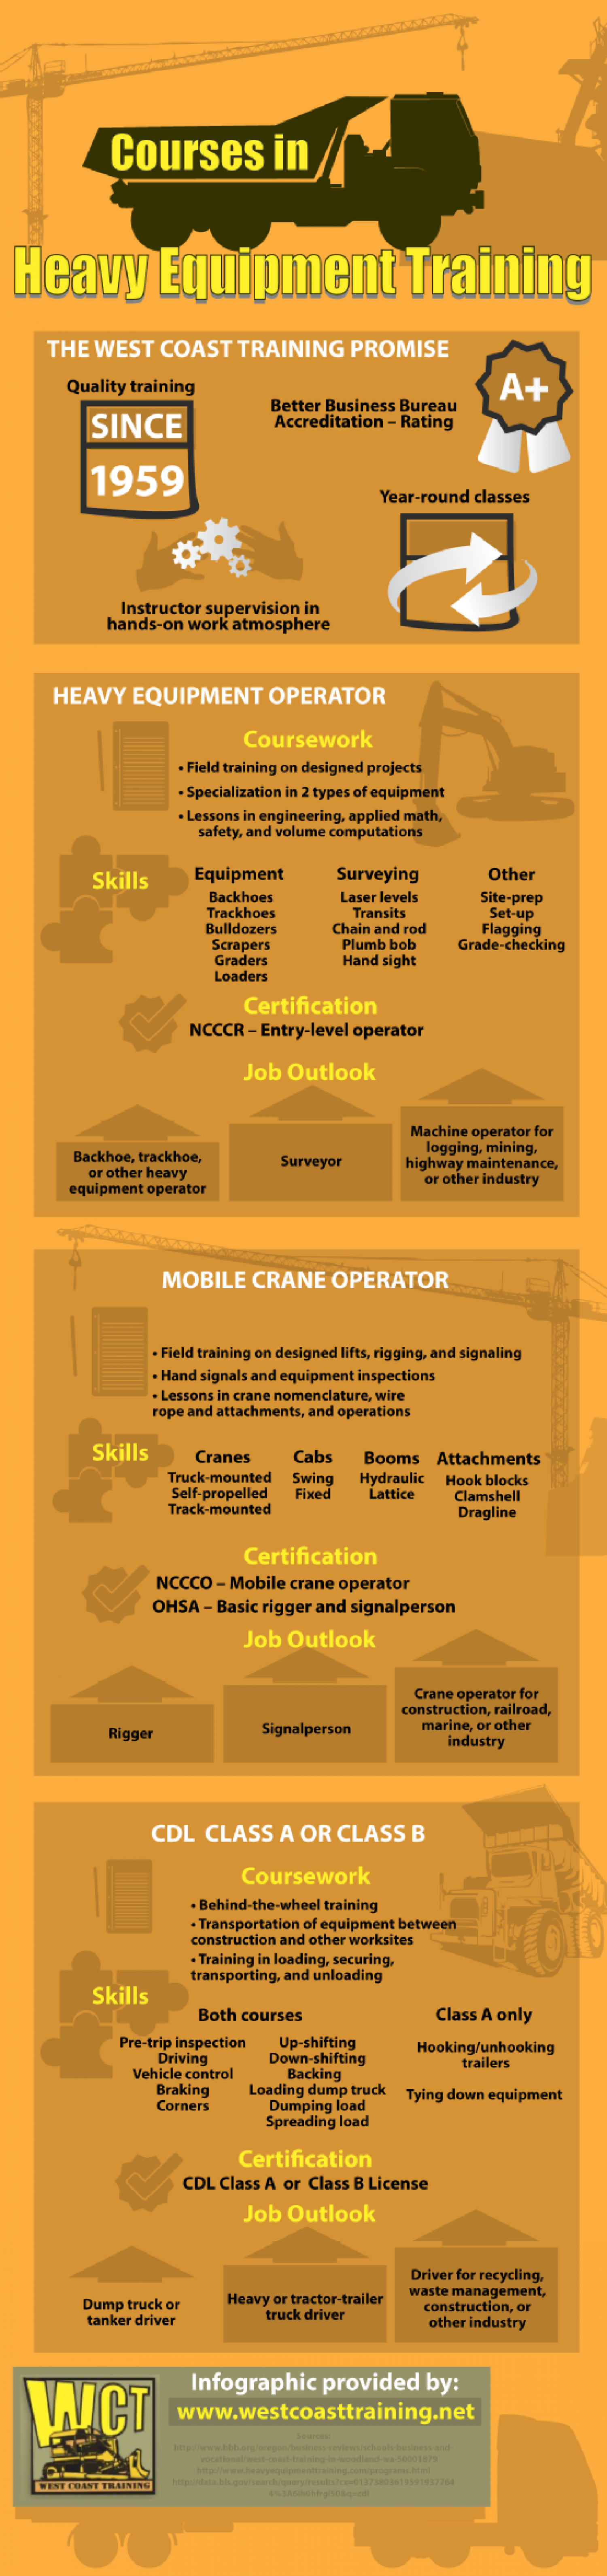 Courses in Heavy Equipment Training Infographic